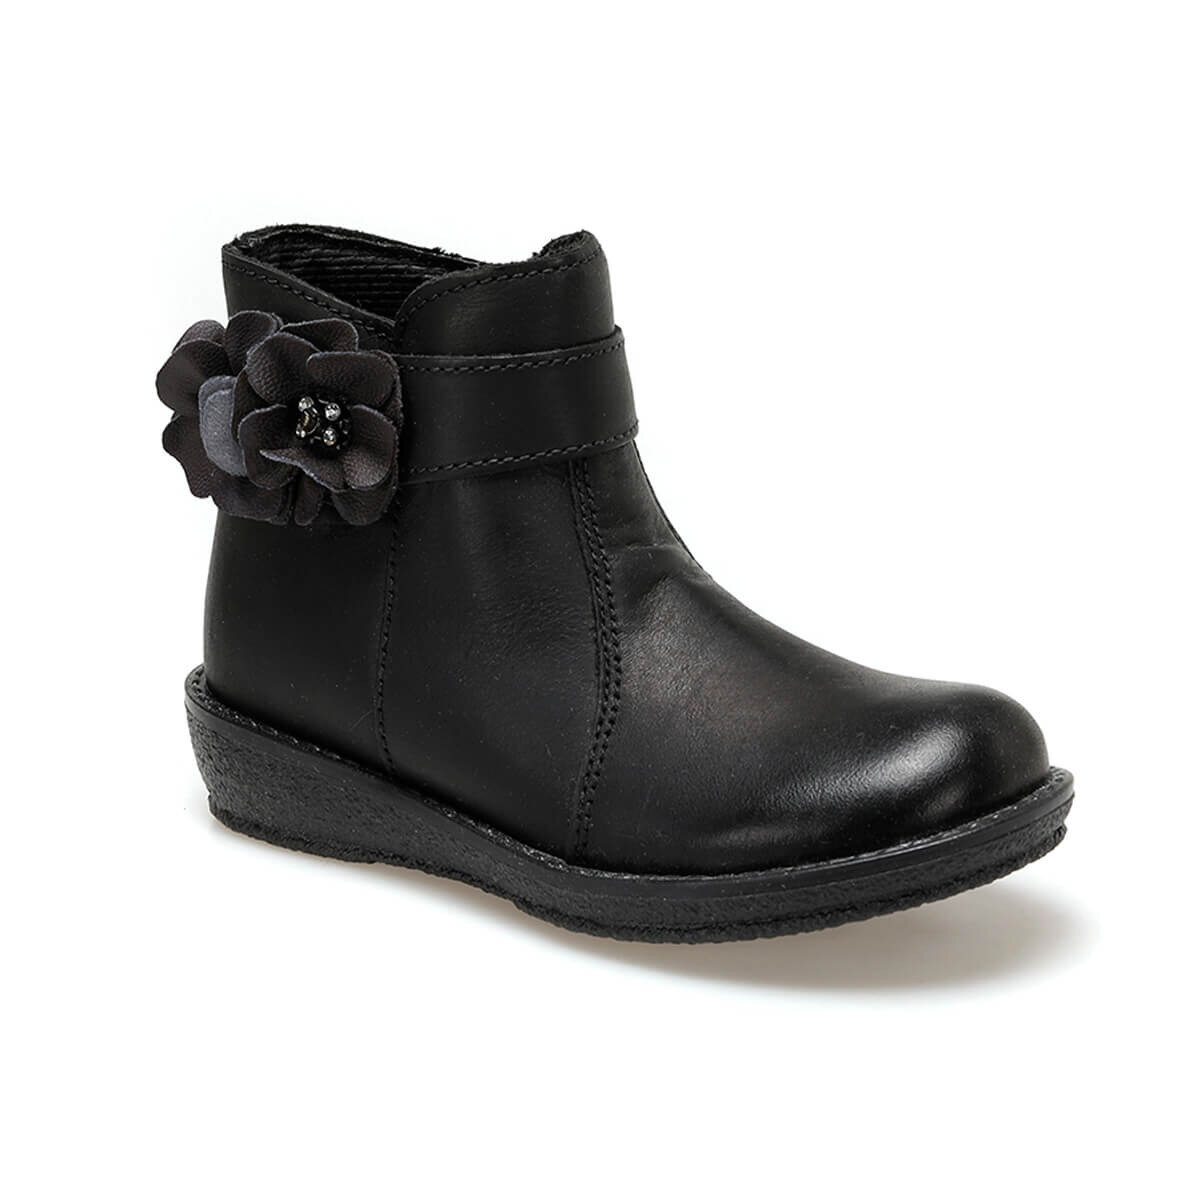 FLO 2323D4-S Black Female Child Boots Kifidis